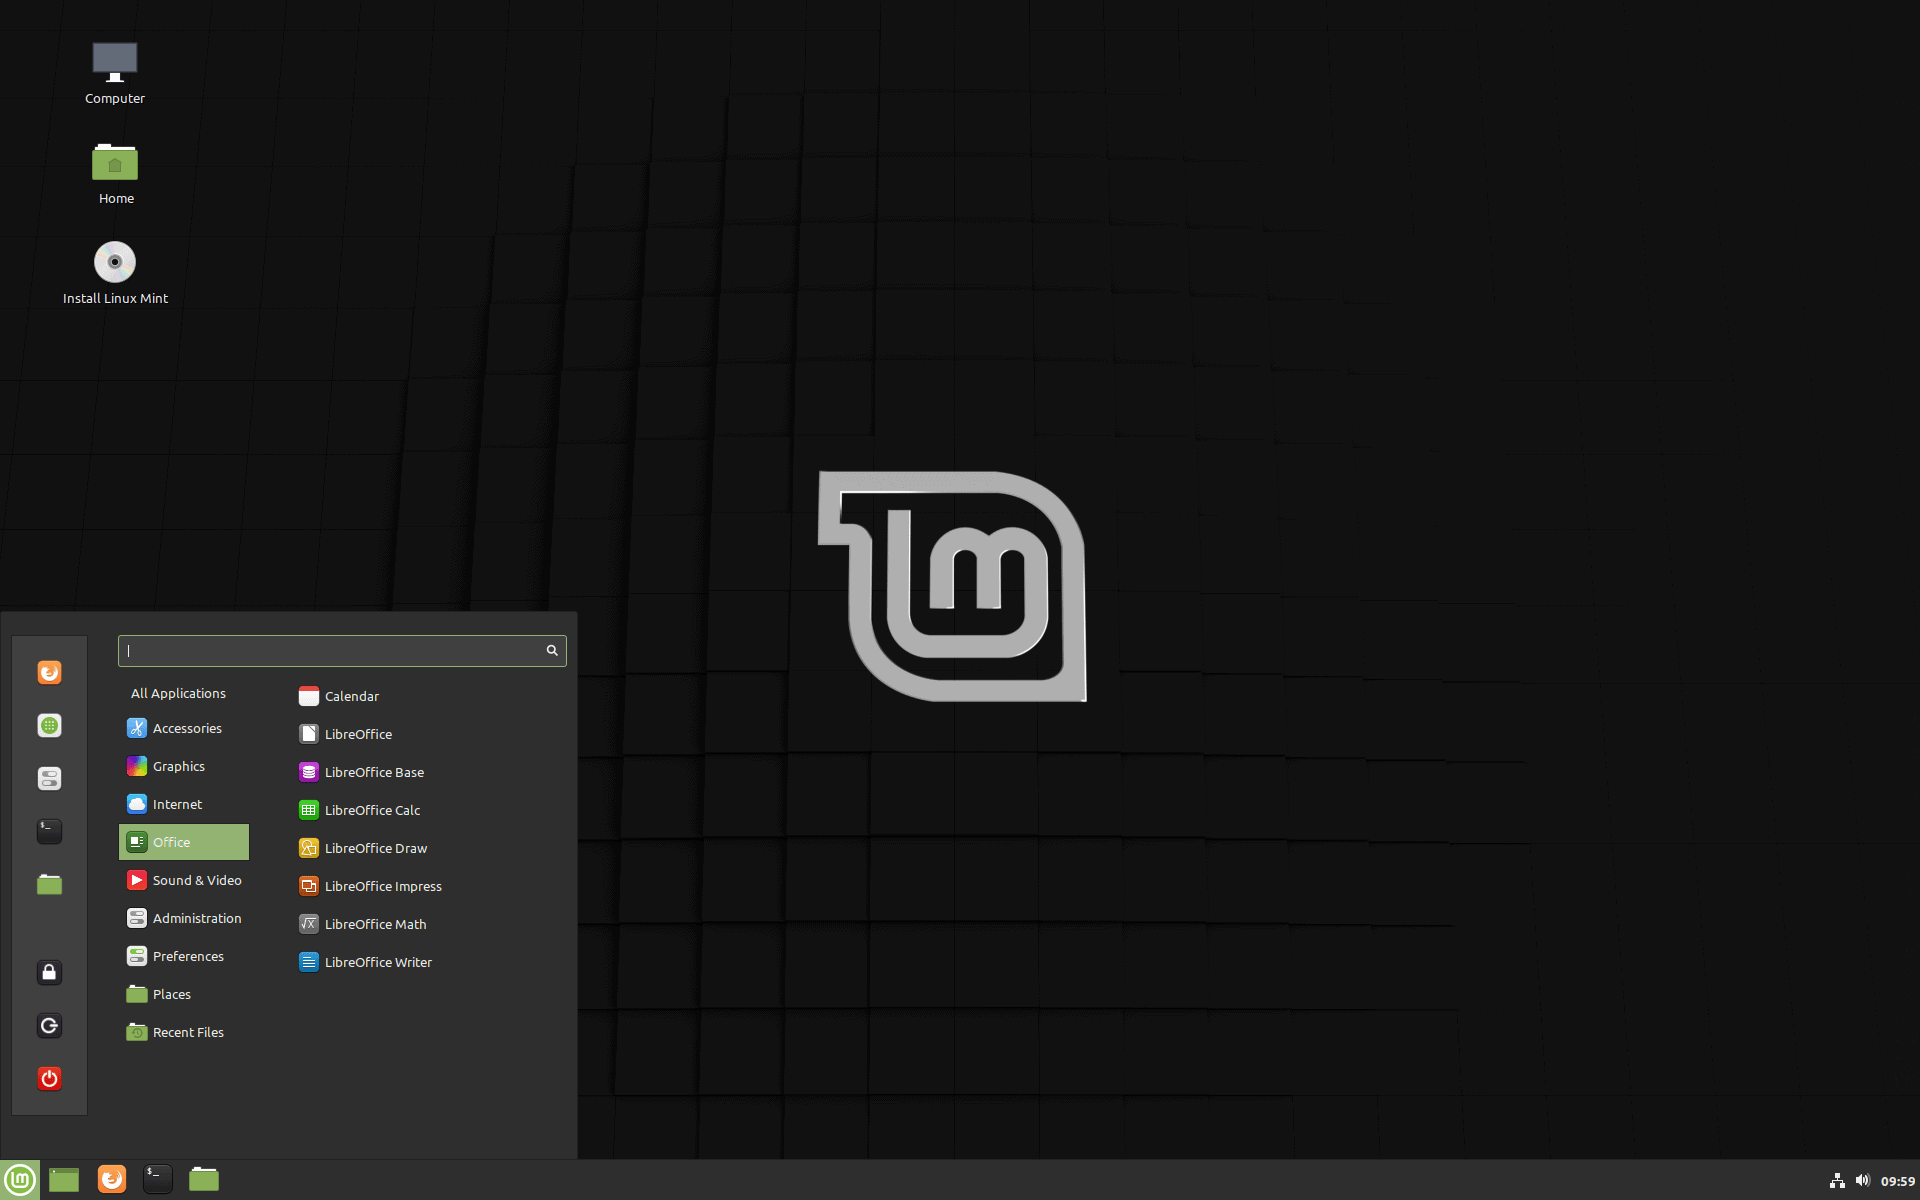 Linux Mint 20 will block Ubuntu Snap by default